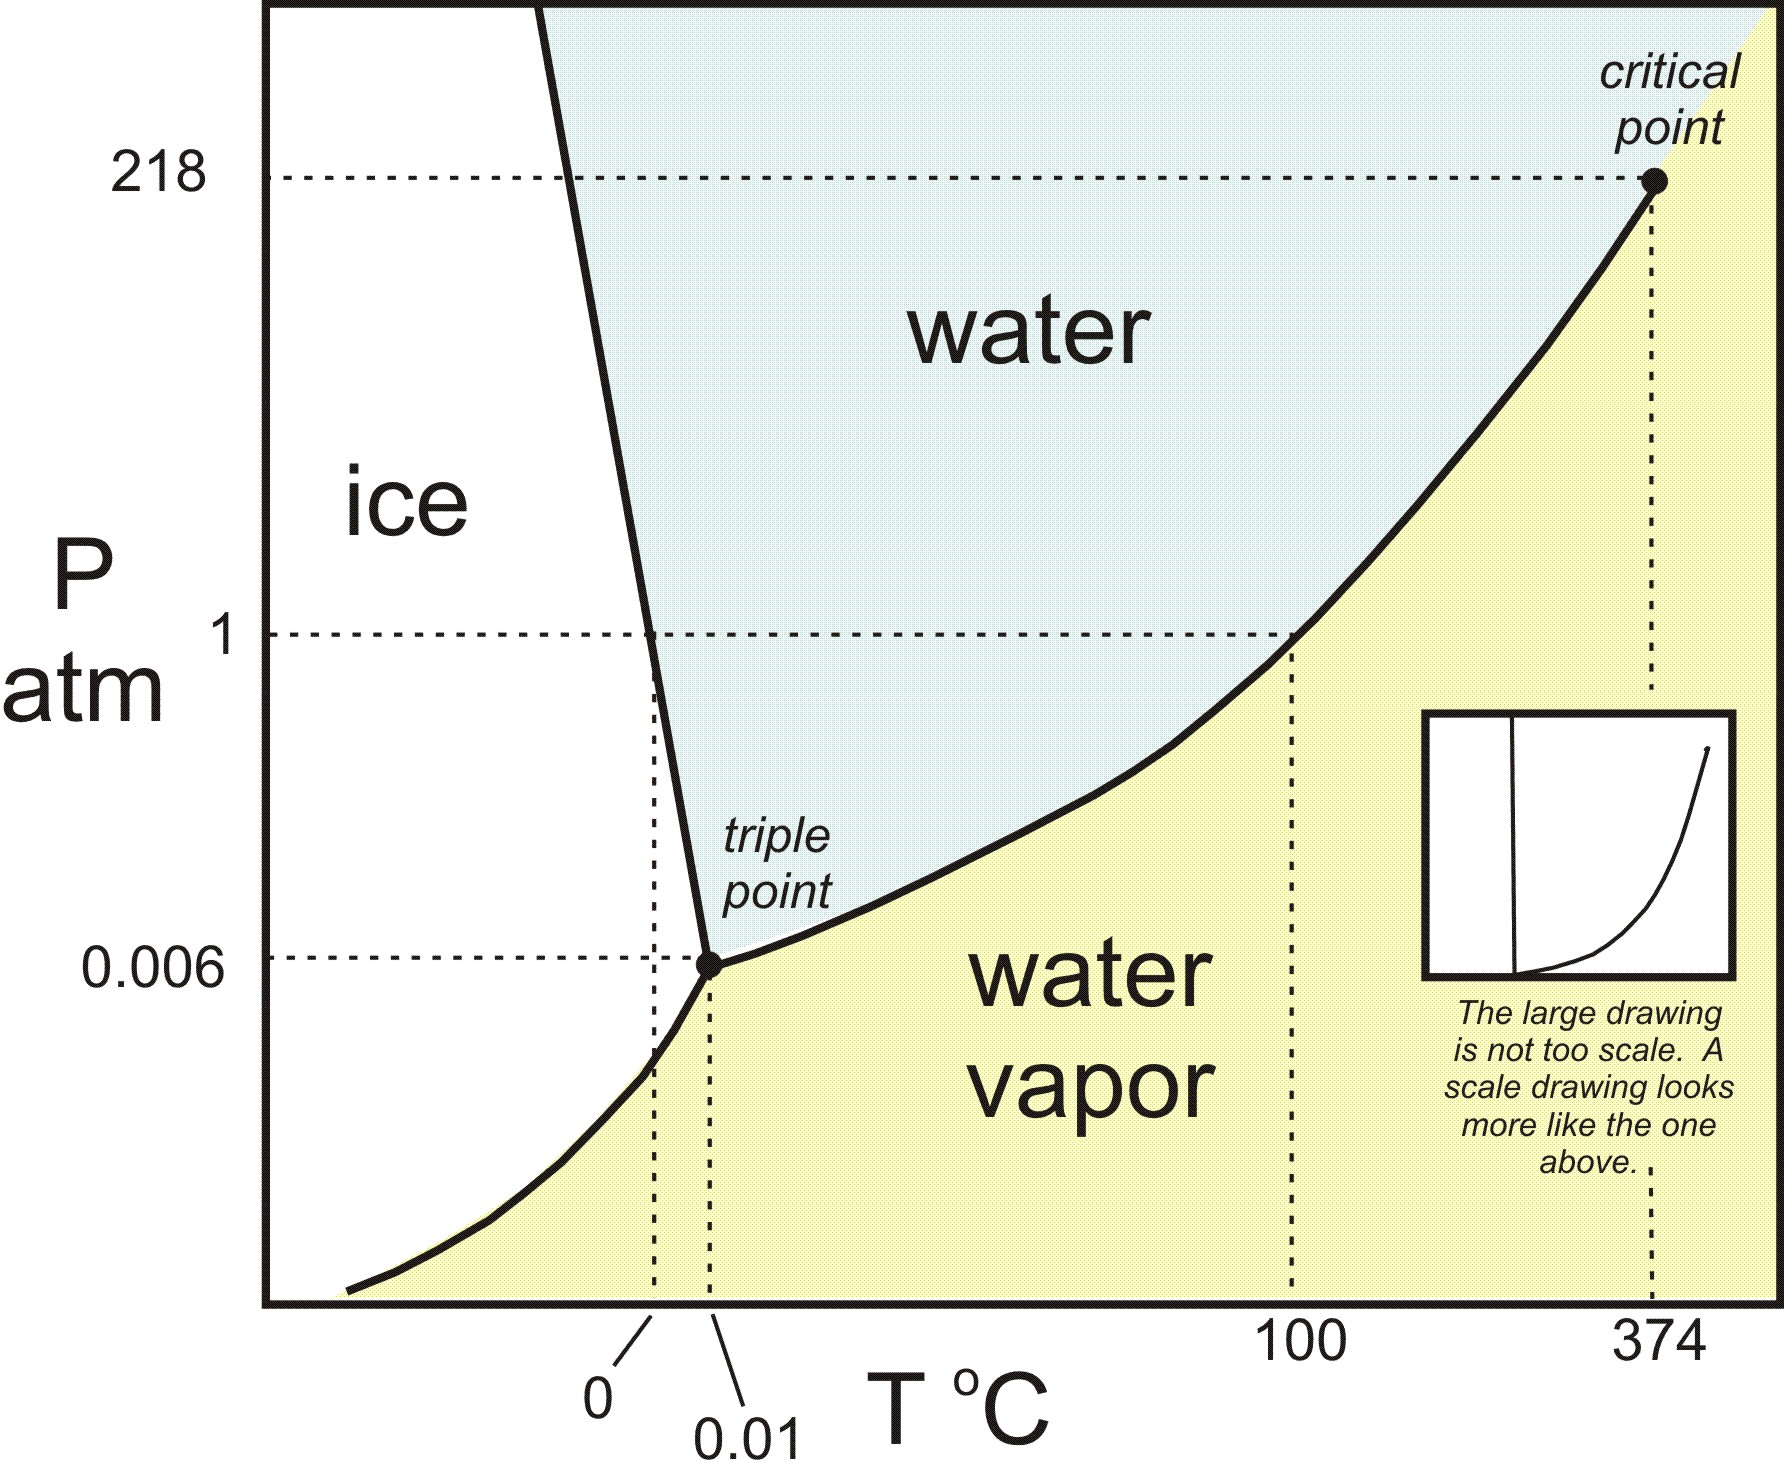 h2o_phase_diagram.jpg